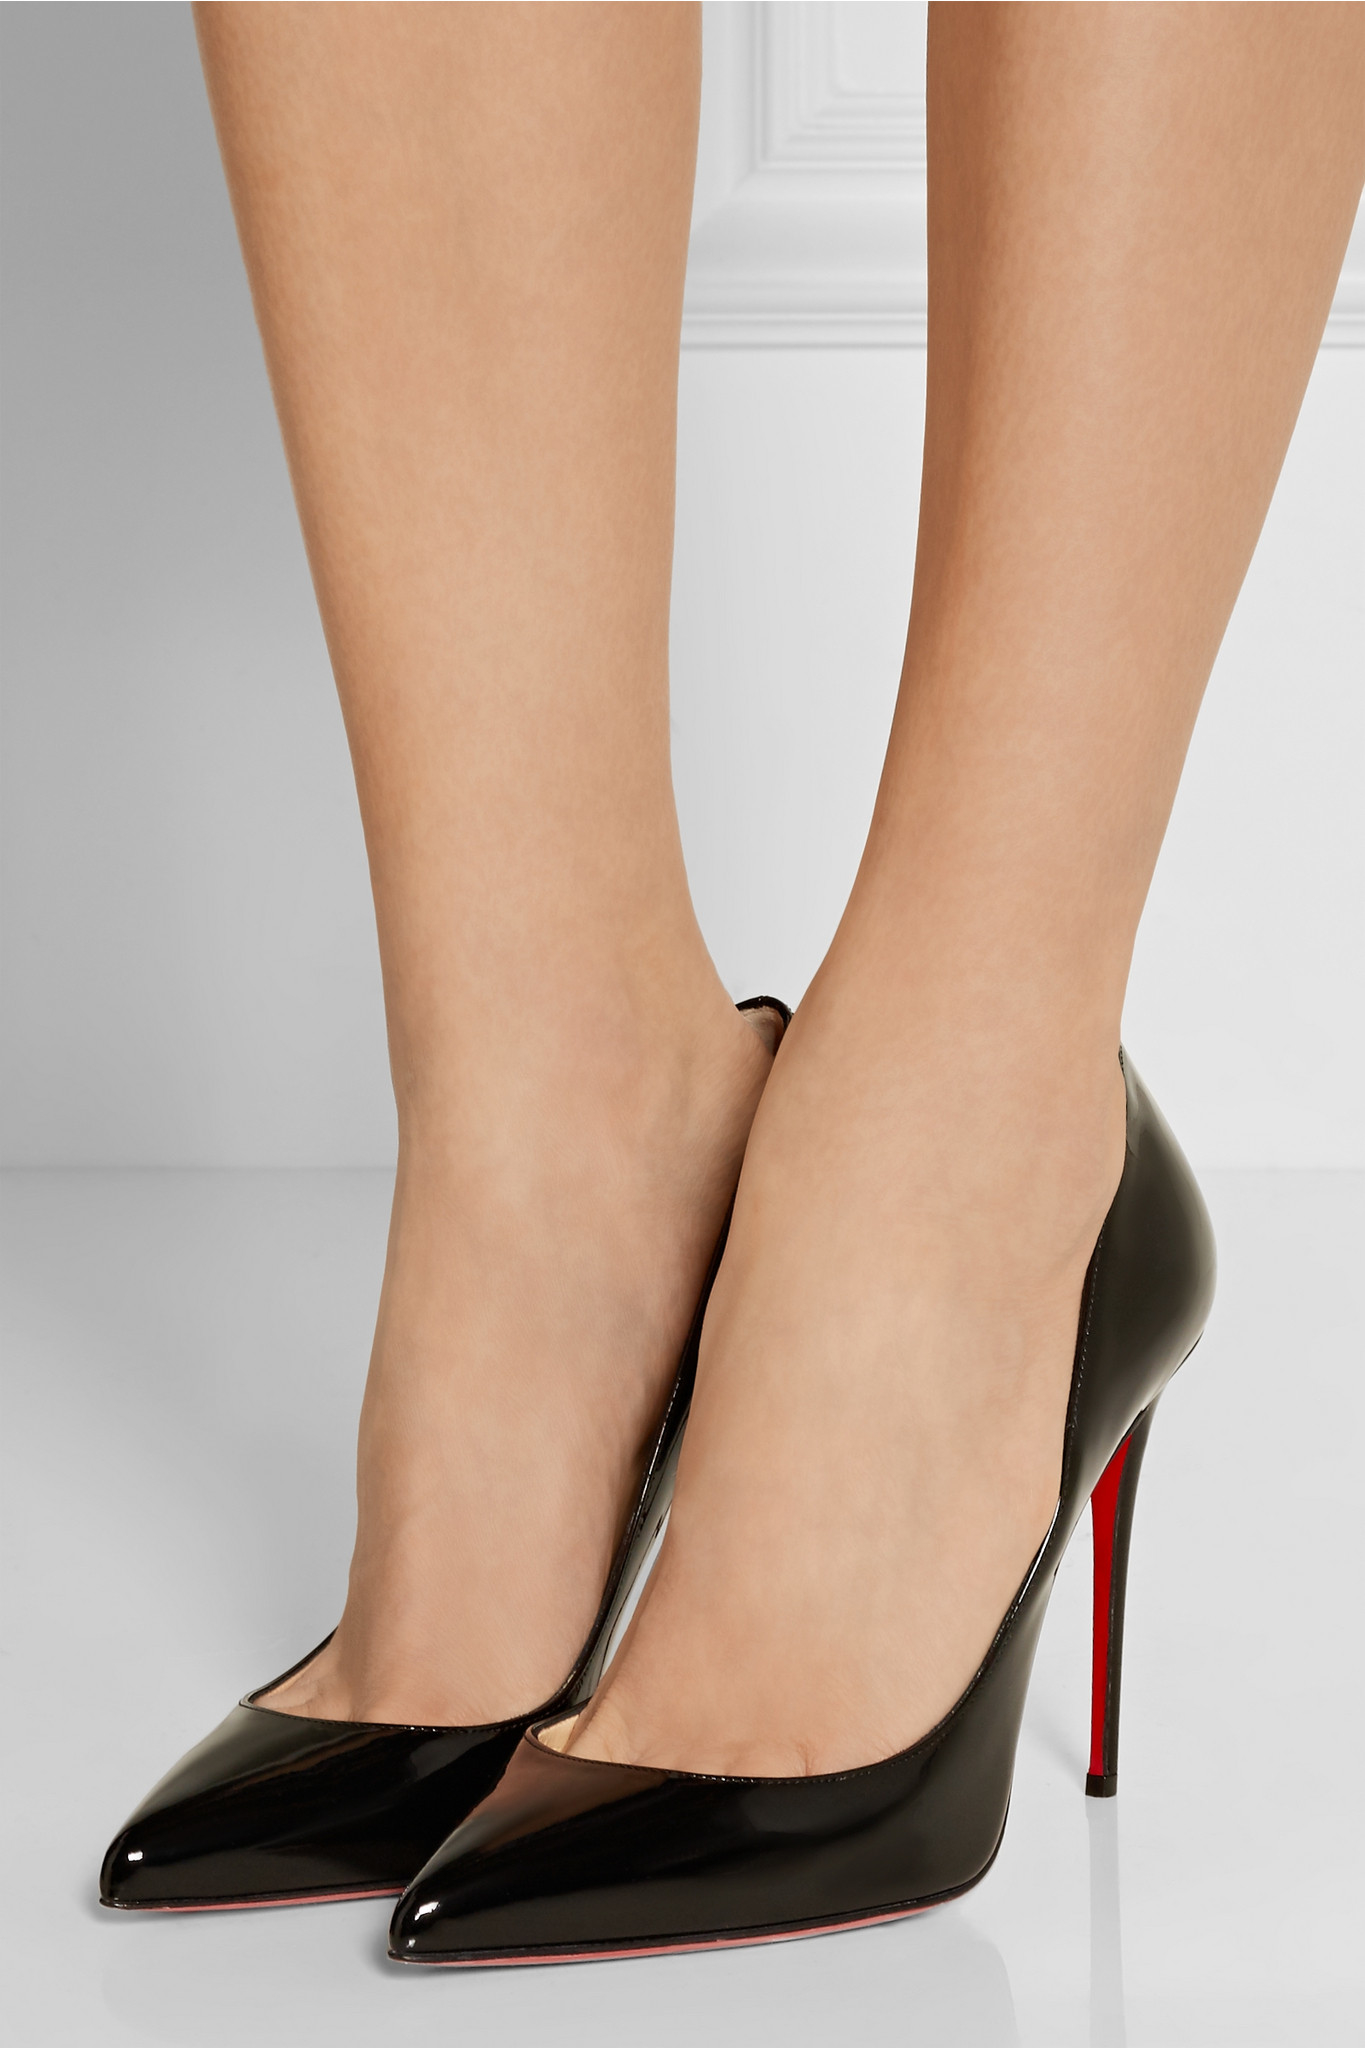 Christian Louboutin Inspired Shoes Uk